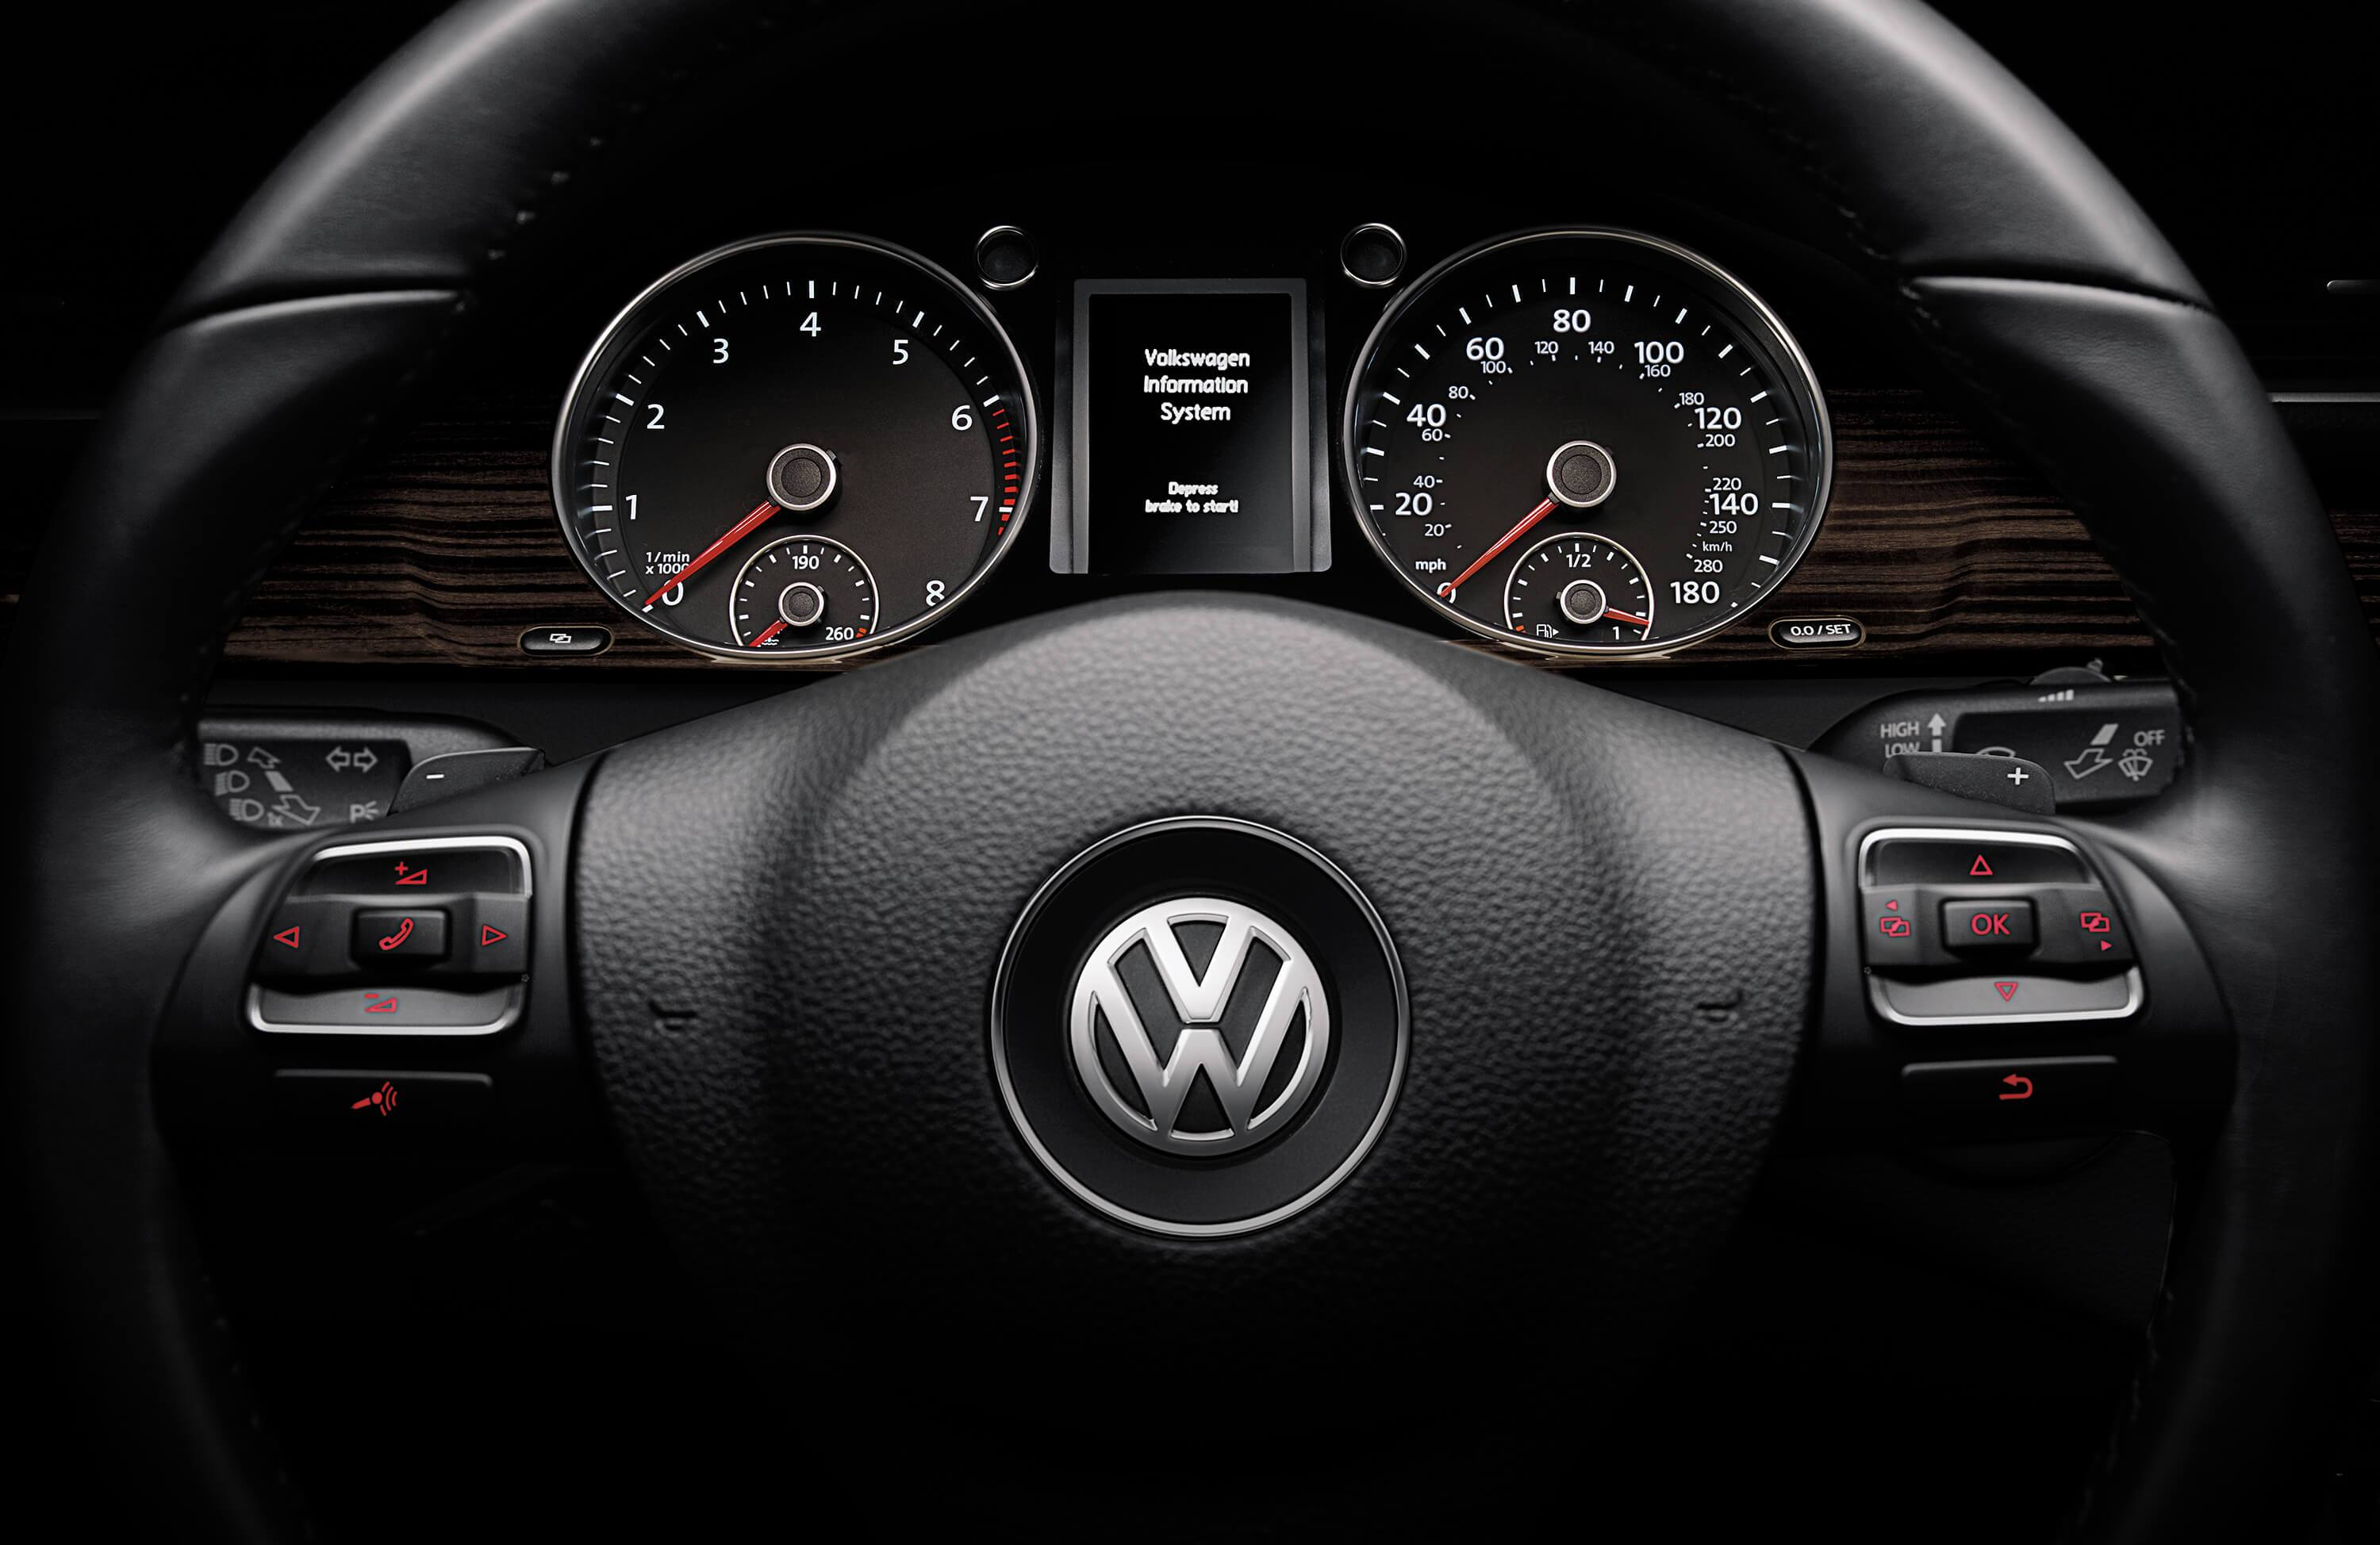 Volkswagen Safety and Dependability